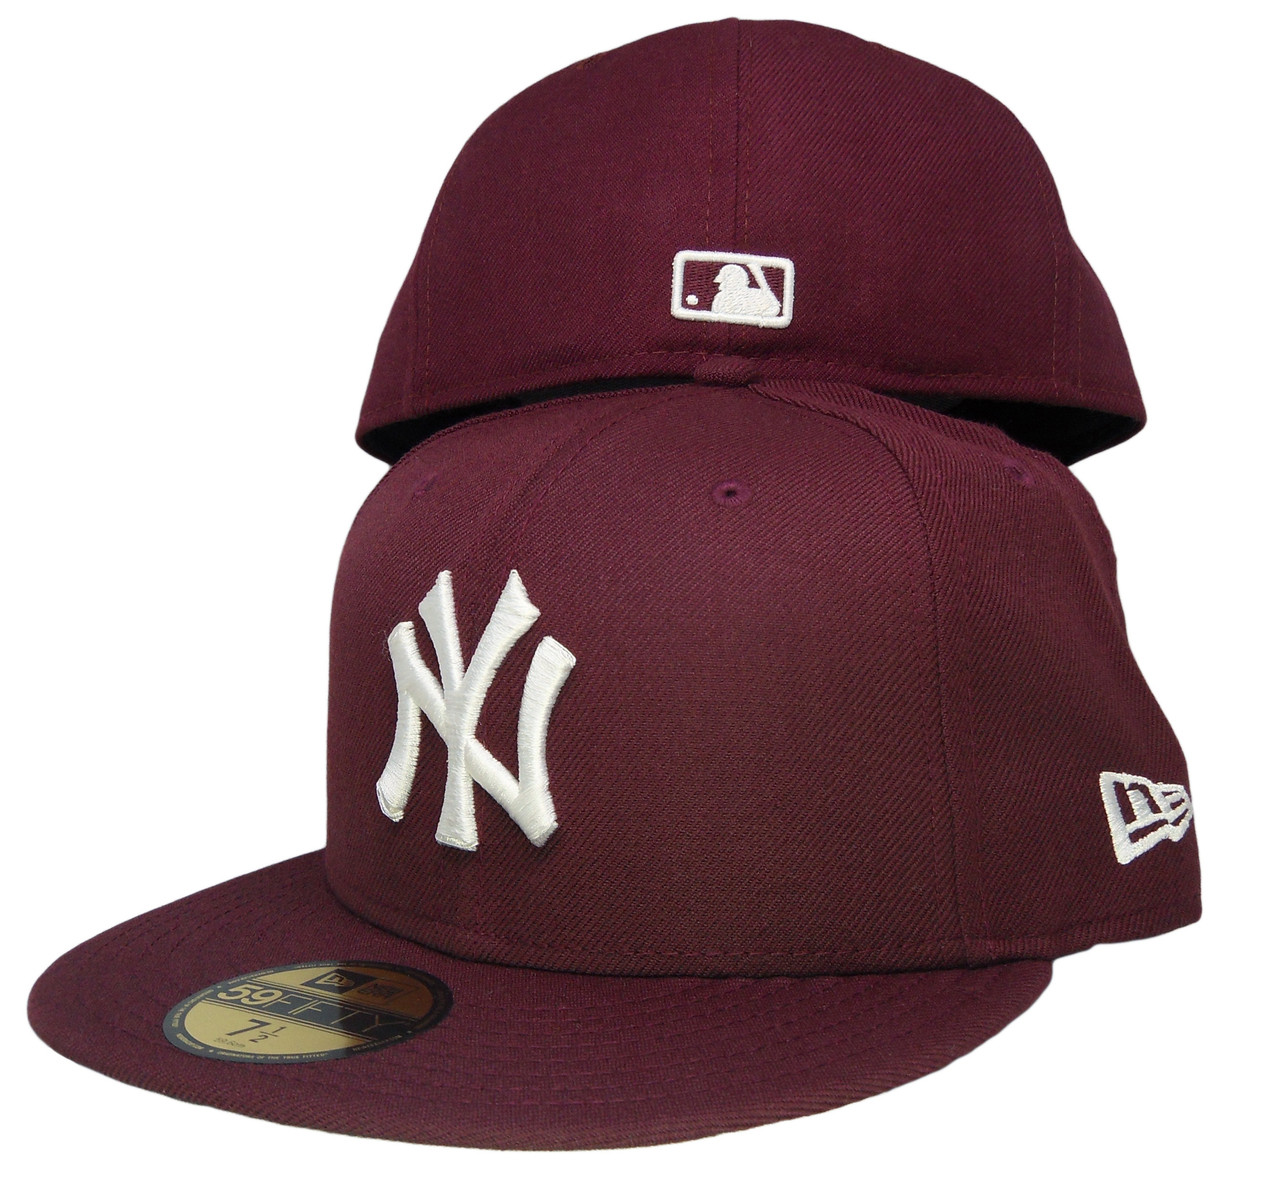 New York Yankees New Era 59Fifty Basic Fitted Hat - Maroon 040f5c8da9f